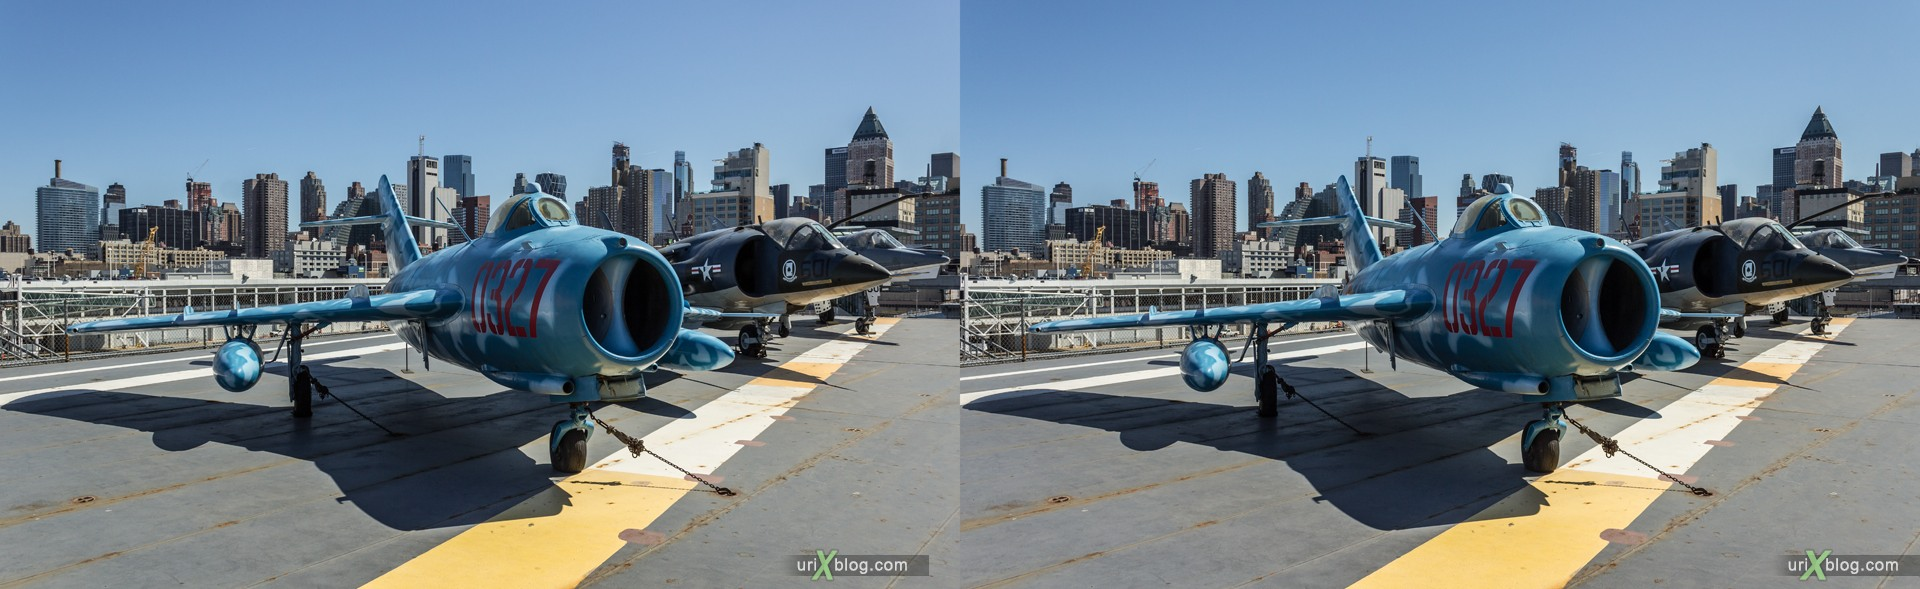 2013, USA, NYC, New York, aircraft carrier Intrepid museum, MiG-17, sea, air, space, ship, submarine, aircraft, airplane, helicopter, military, 3D, stereo pair, cross-eyed, crossview, cross view stereo pair, stereoscopic